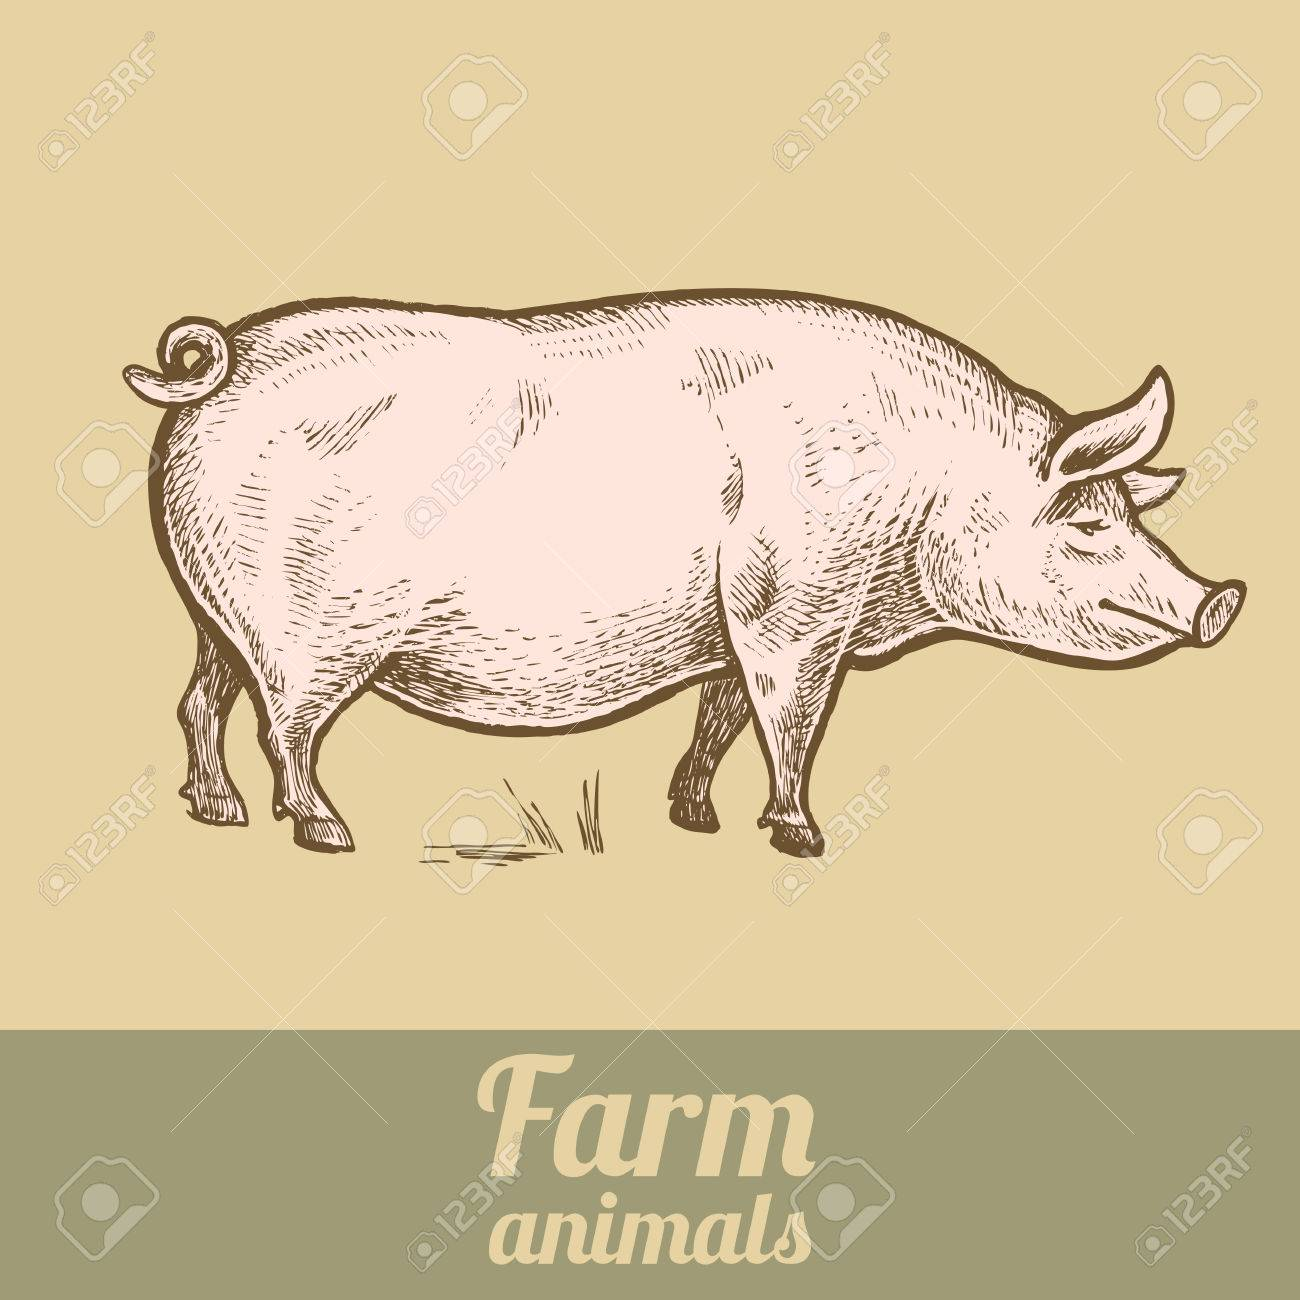 Farm Animal Pig Colored Print Style Vintage Engraving Vector Illustration Of A Series